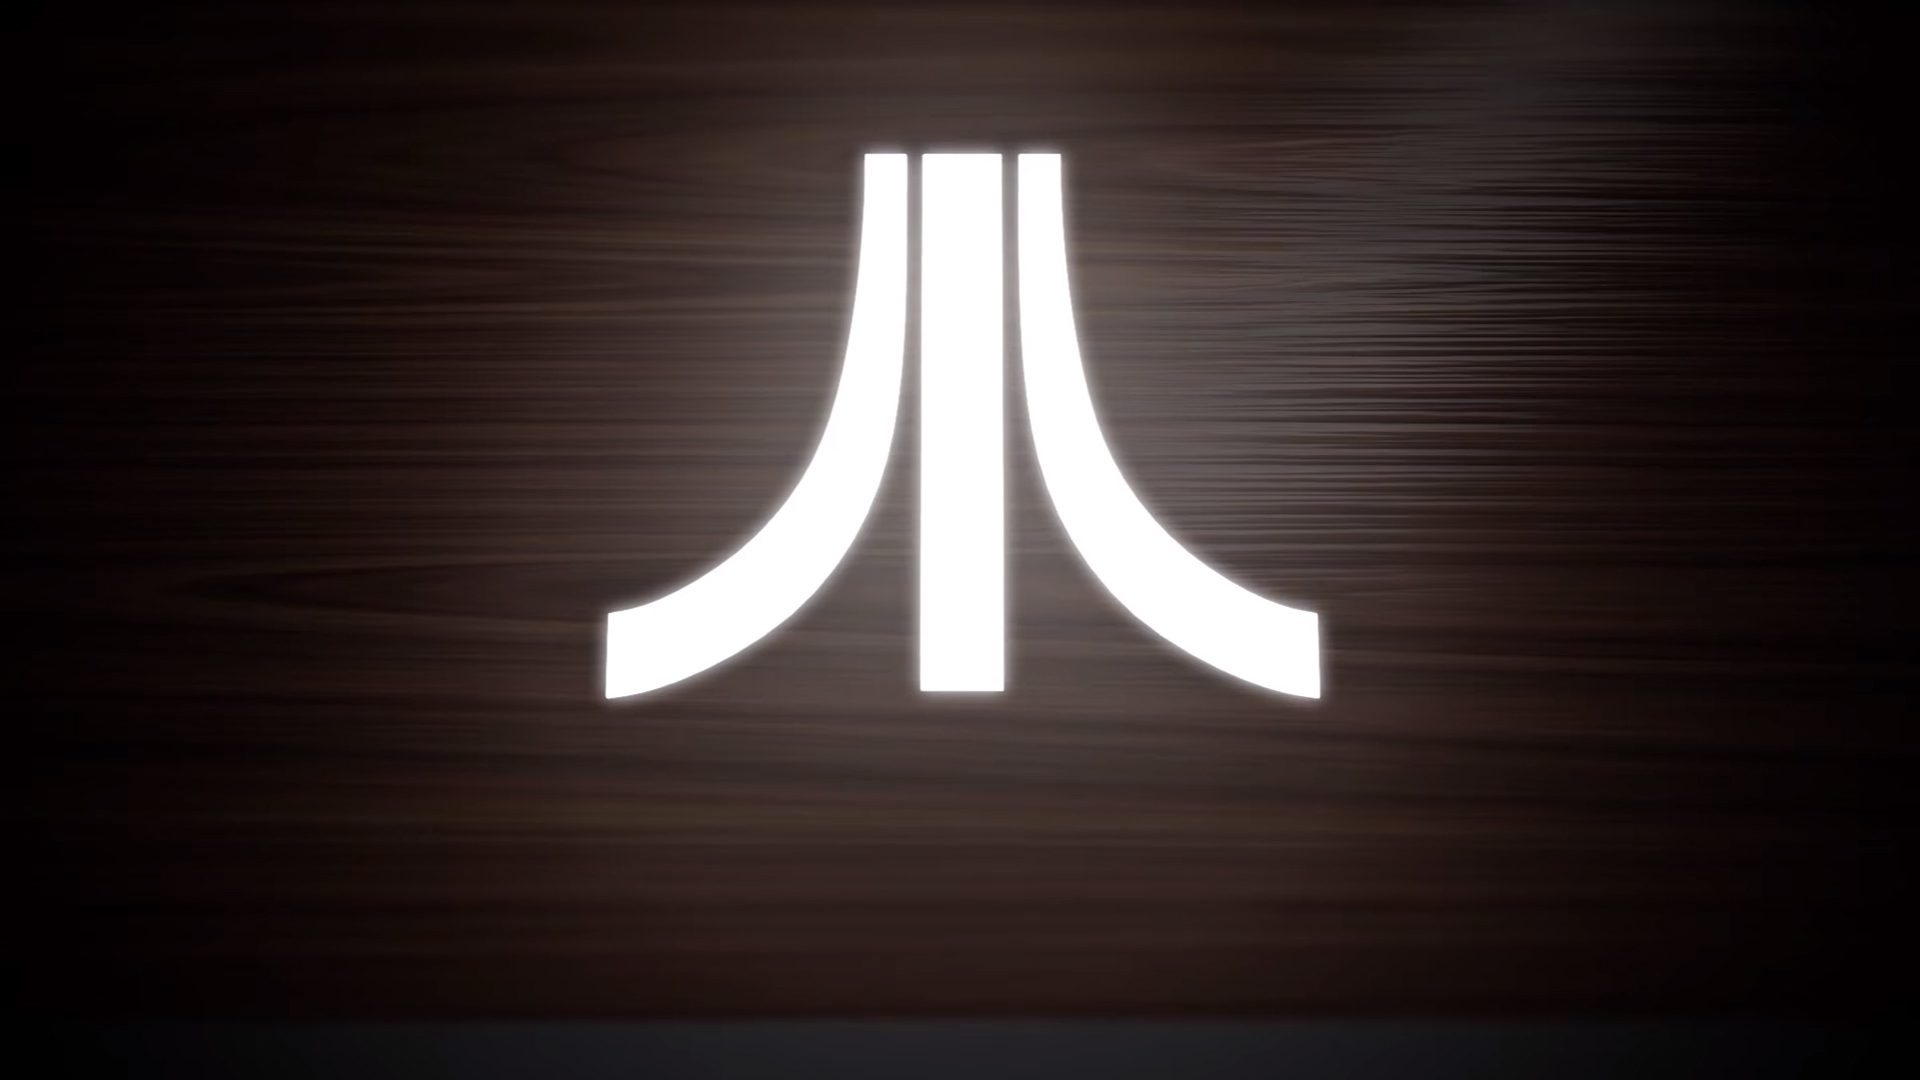 The Atari Inc. brand and its brand logo are now going to be used in development.